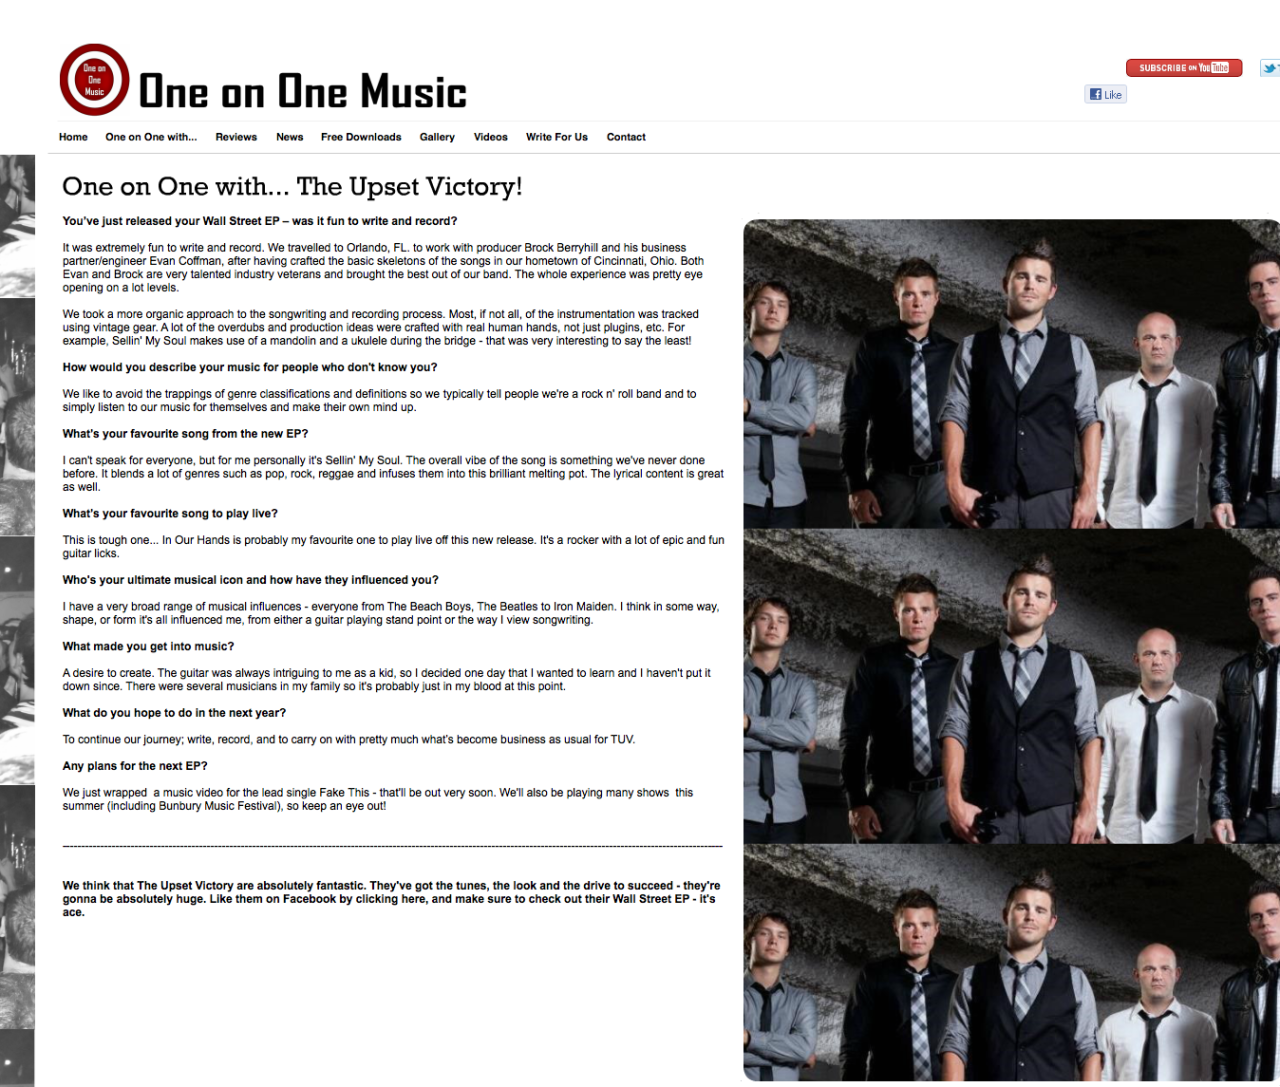 one on one music — The Upset Victory Blog — The Upset Victory